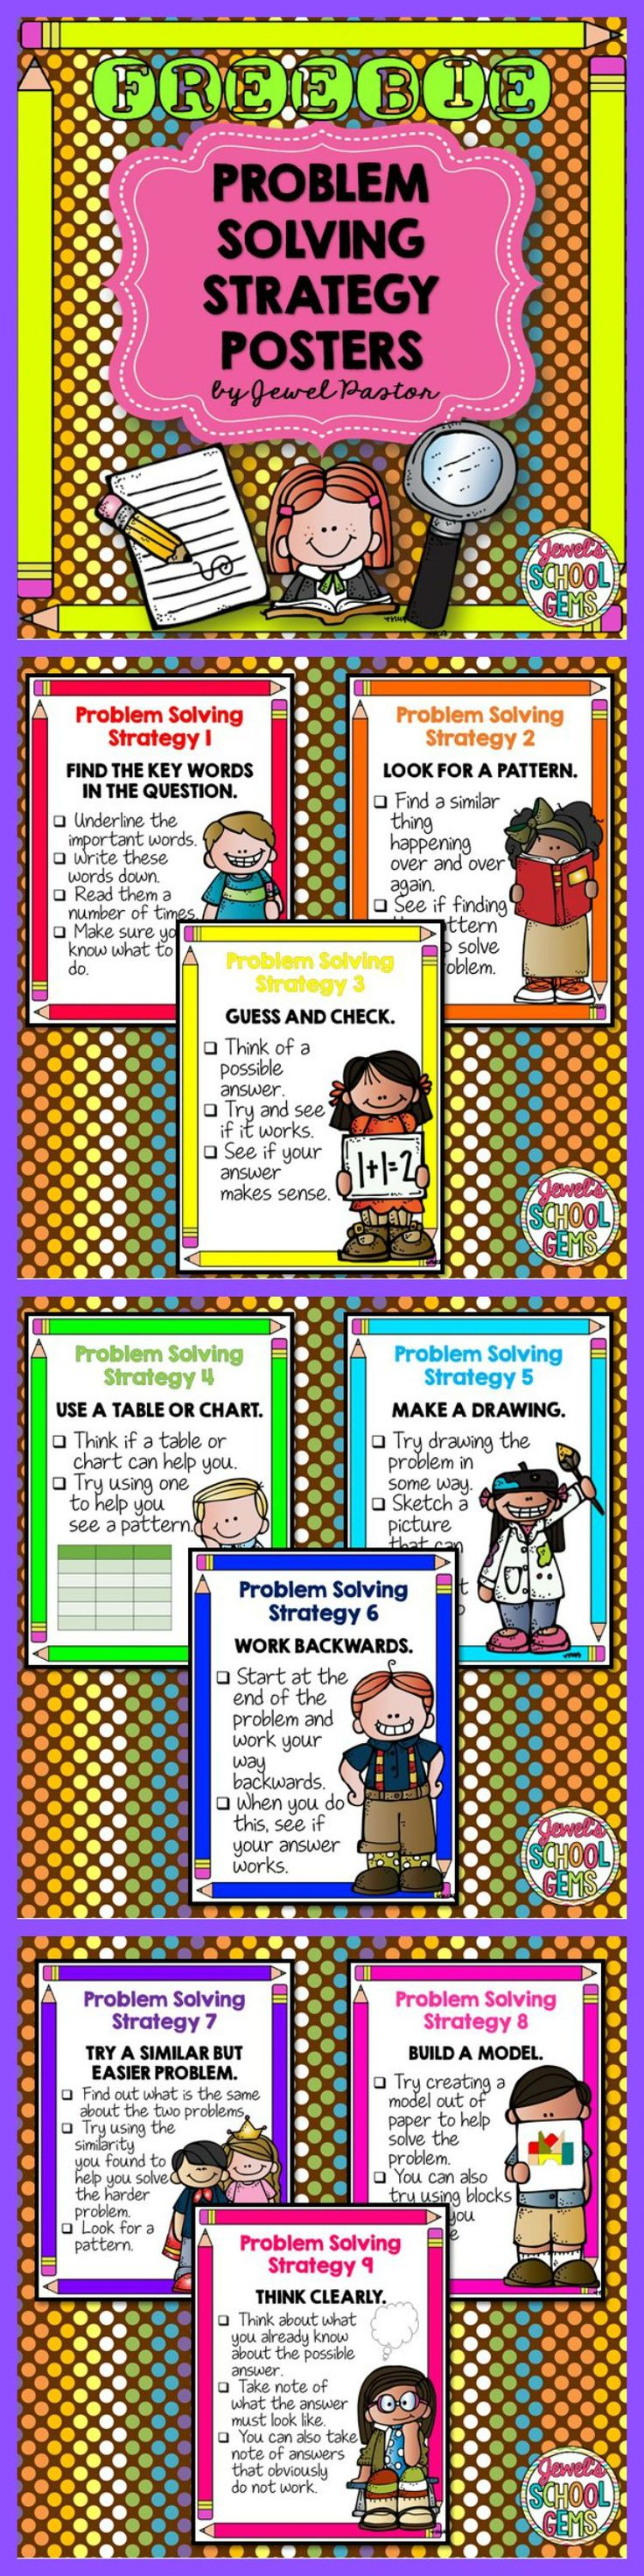 PROBLEM SOLVING STRATEGY POSTERS FREEBIE | Get these posters for FREE when you become a Jewel's School Gems Subscriber! #problemsolving #wordproblems #math